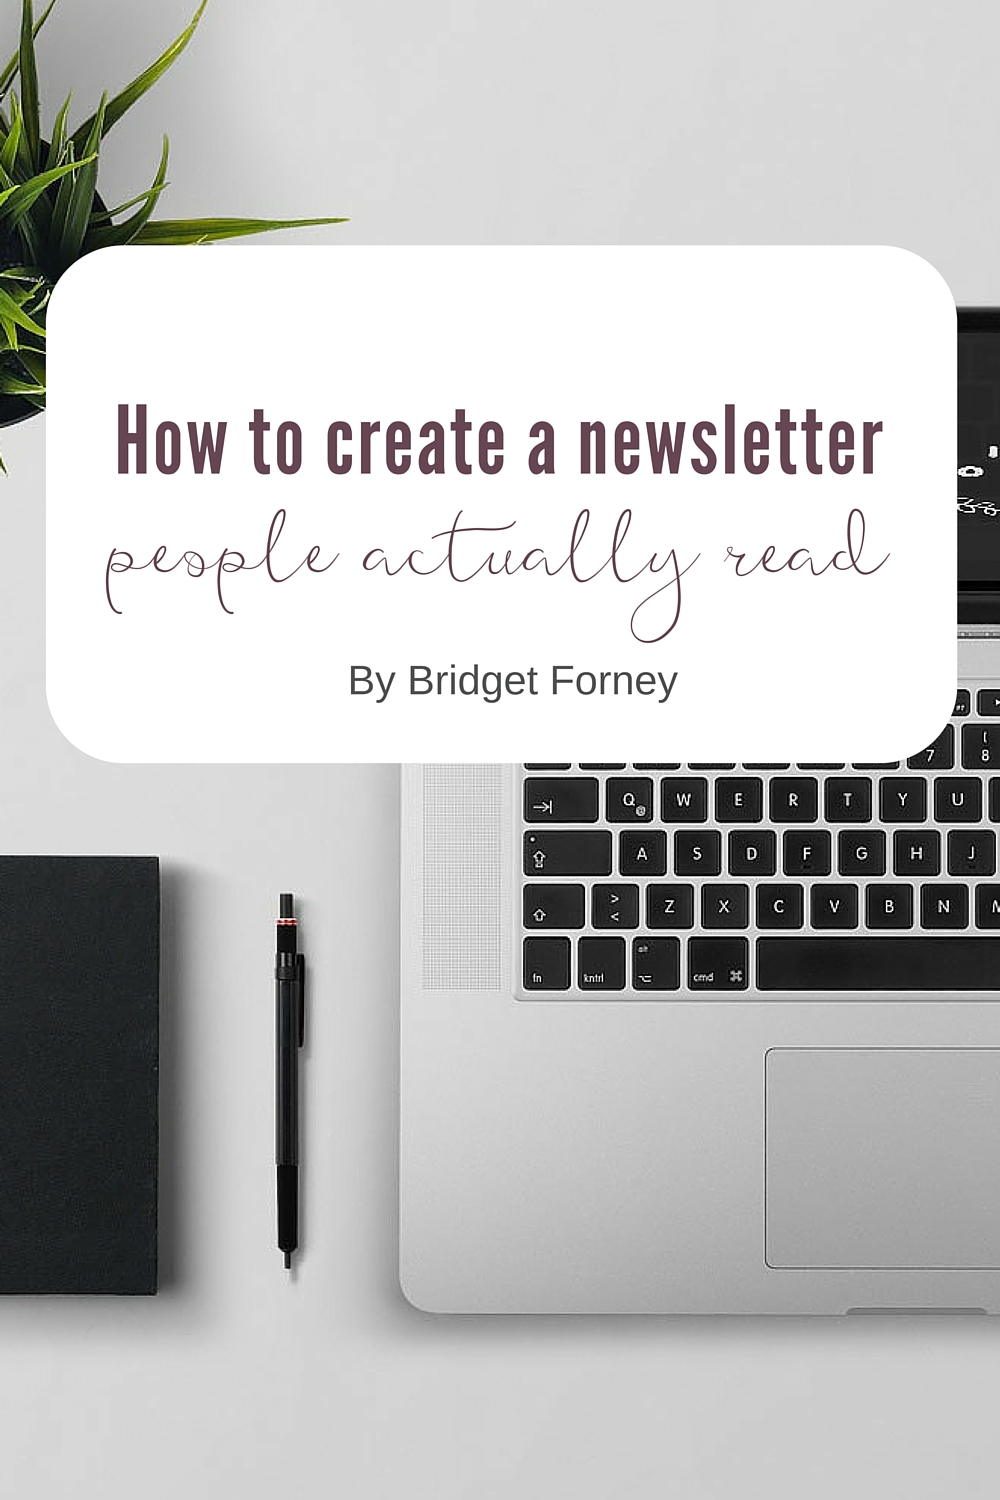 The art of writing the perfect newsletter. A guest post by Bridget Forney on NoraConrad.com Newsletters are also easy to read, portable on a mobile device and convenient because everyone already has email. Readers don't have to learn it, and it doesn't go away until readers delete it – even if it means it lives in an inbox for a week or a month or longer.